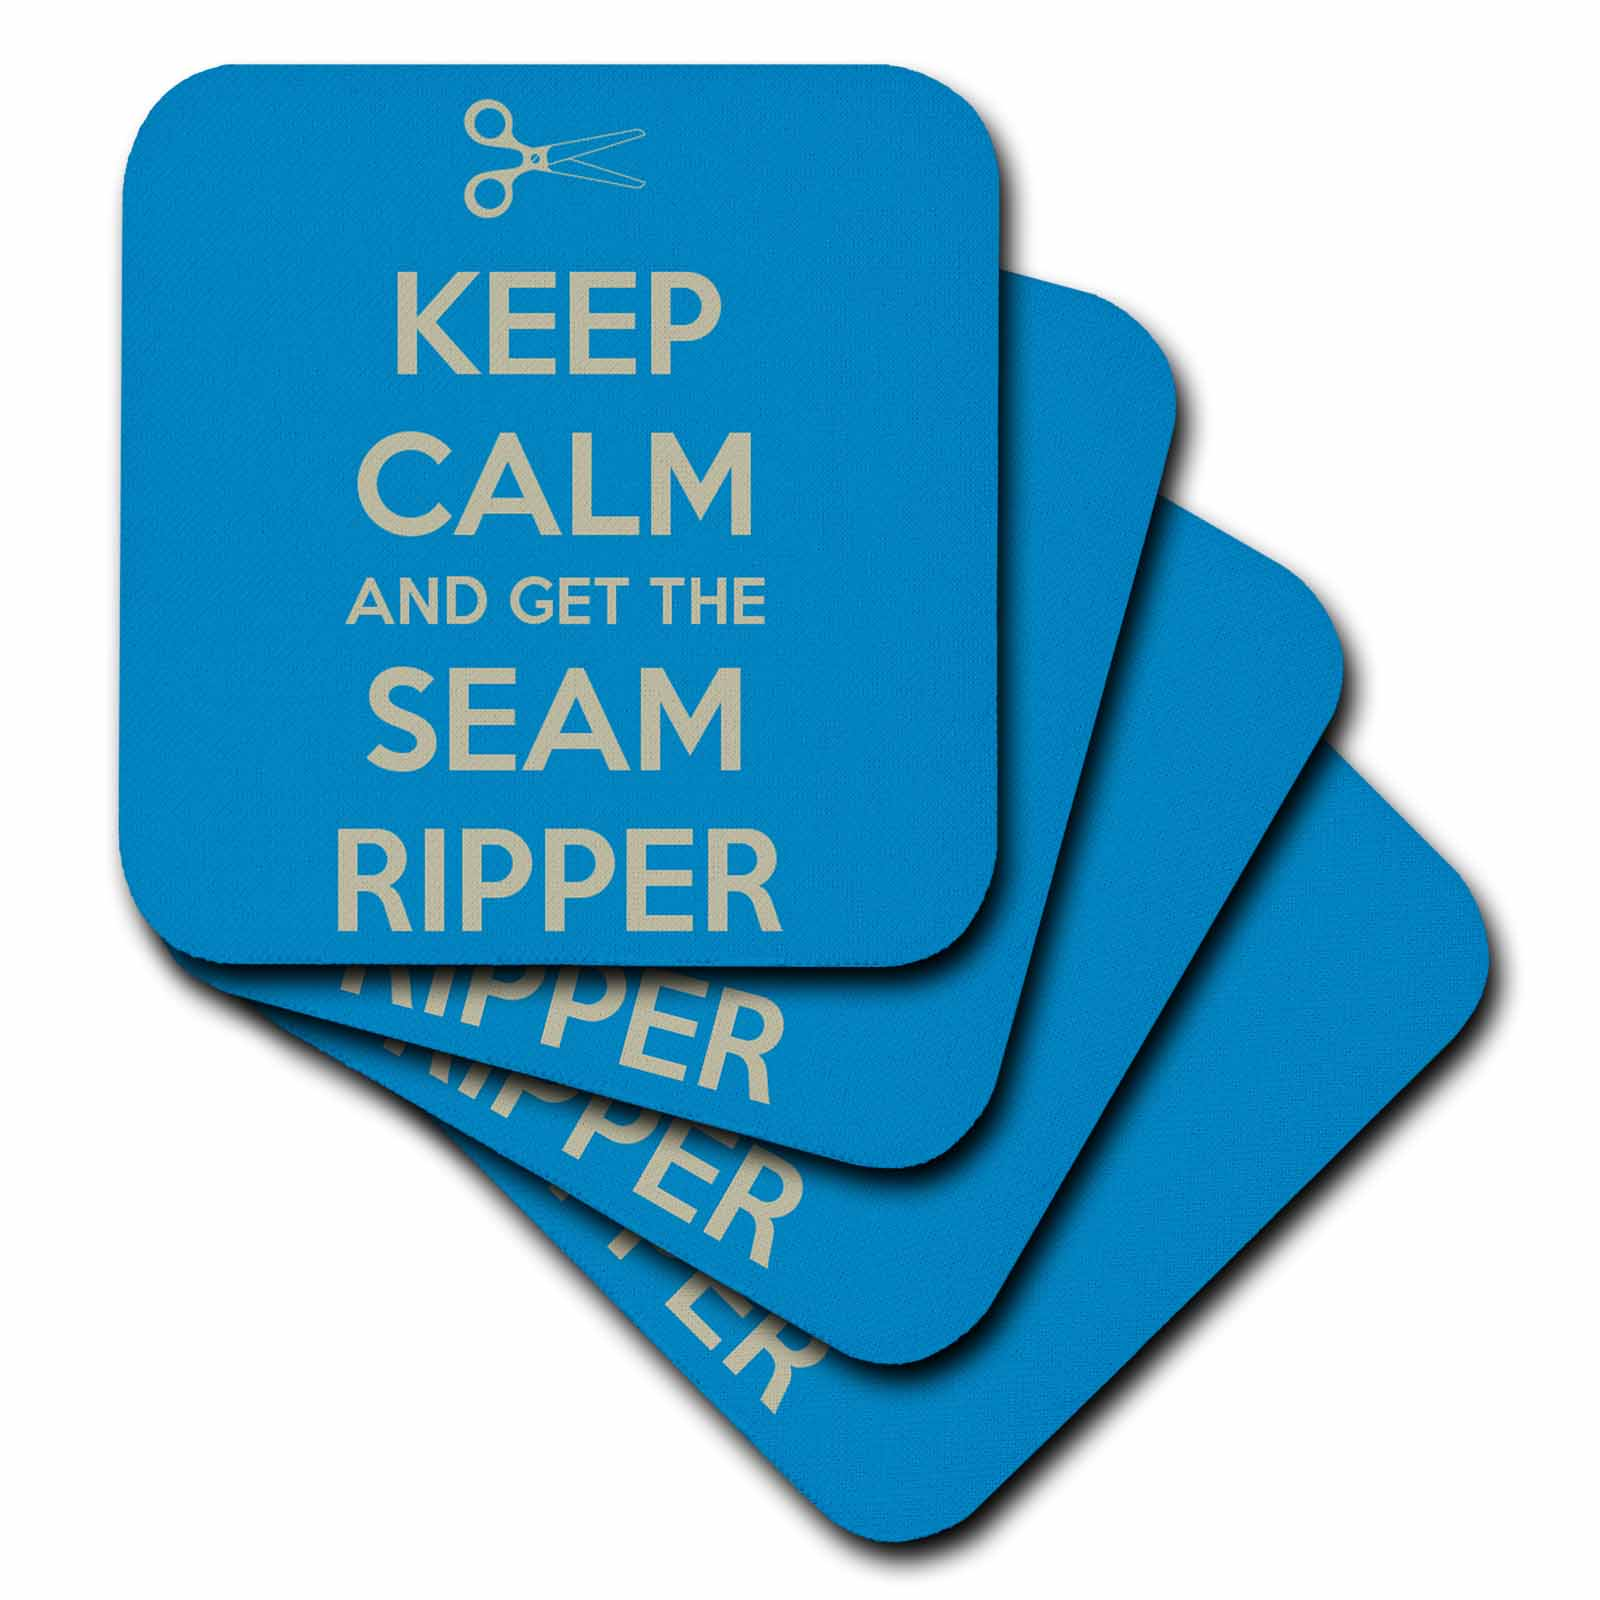 3dRose Keep calm and get the seam ripper, Blue and White,, Soft Coasters, set of 4